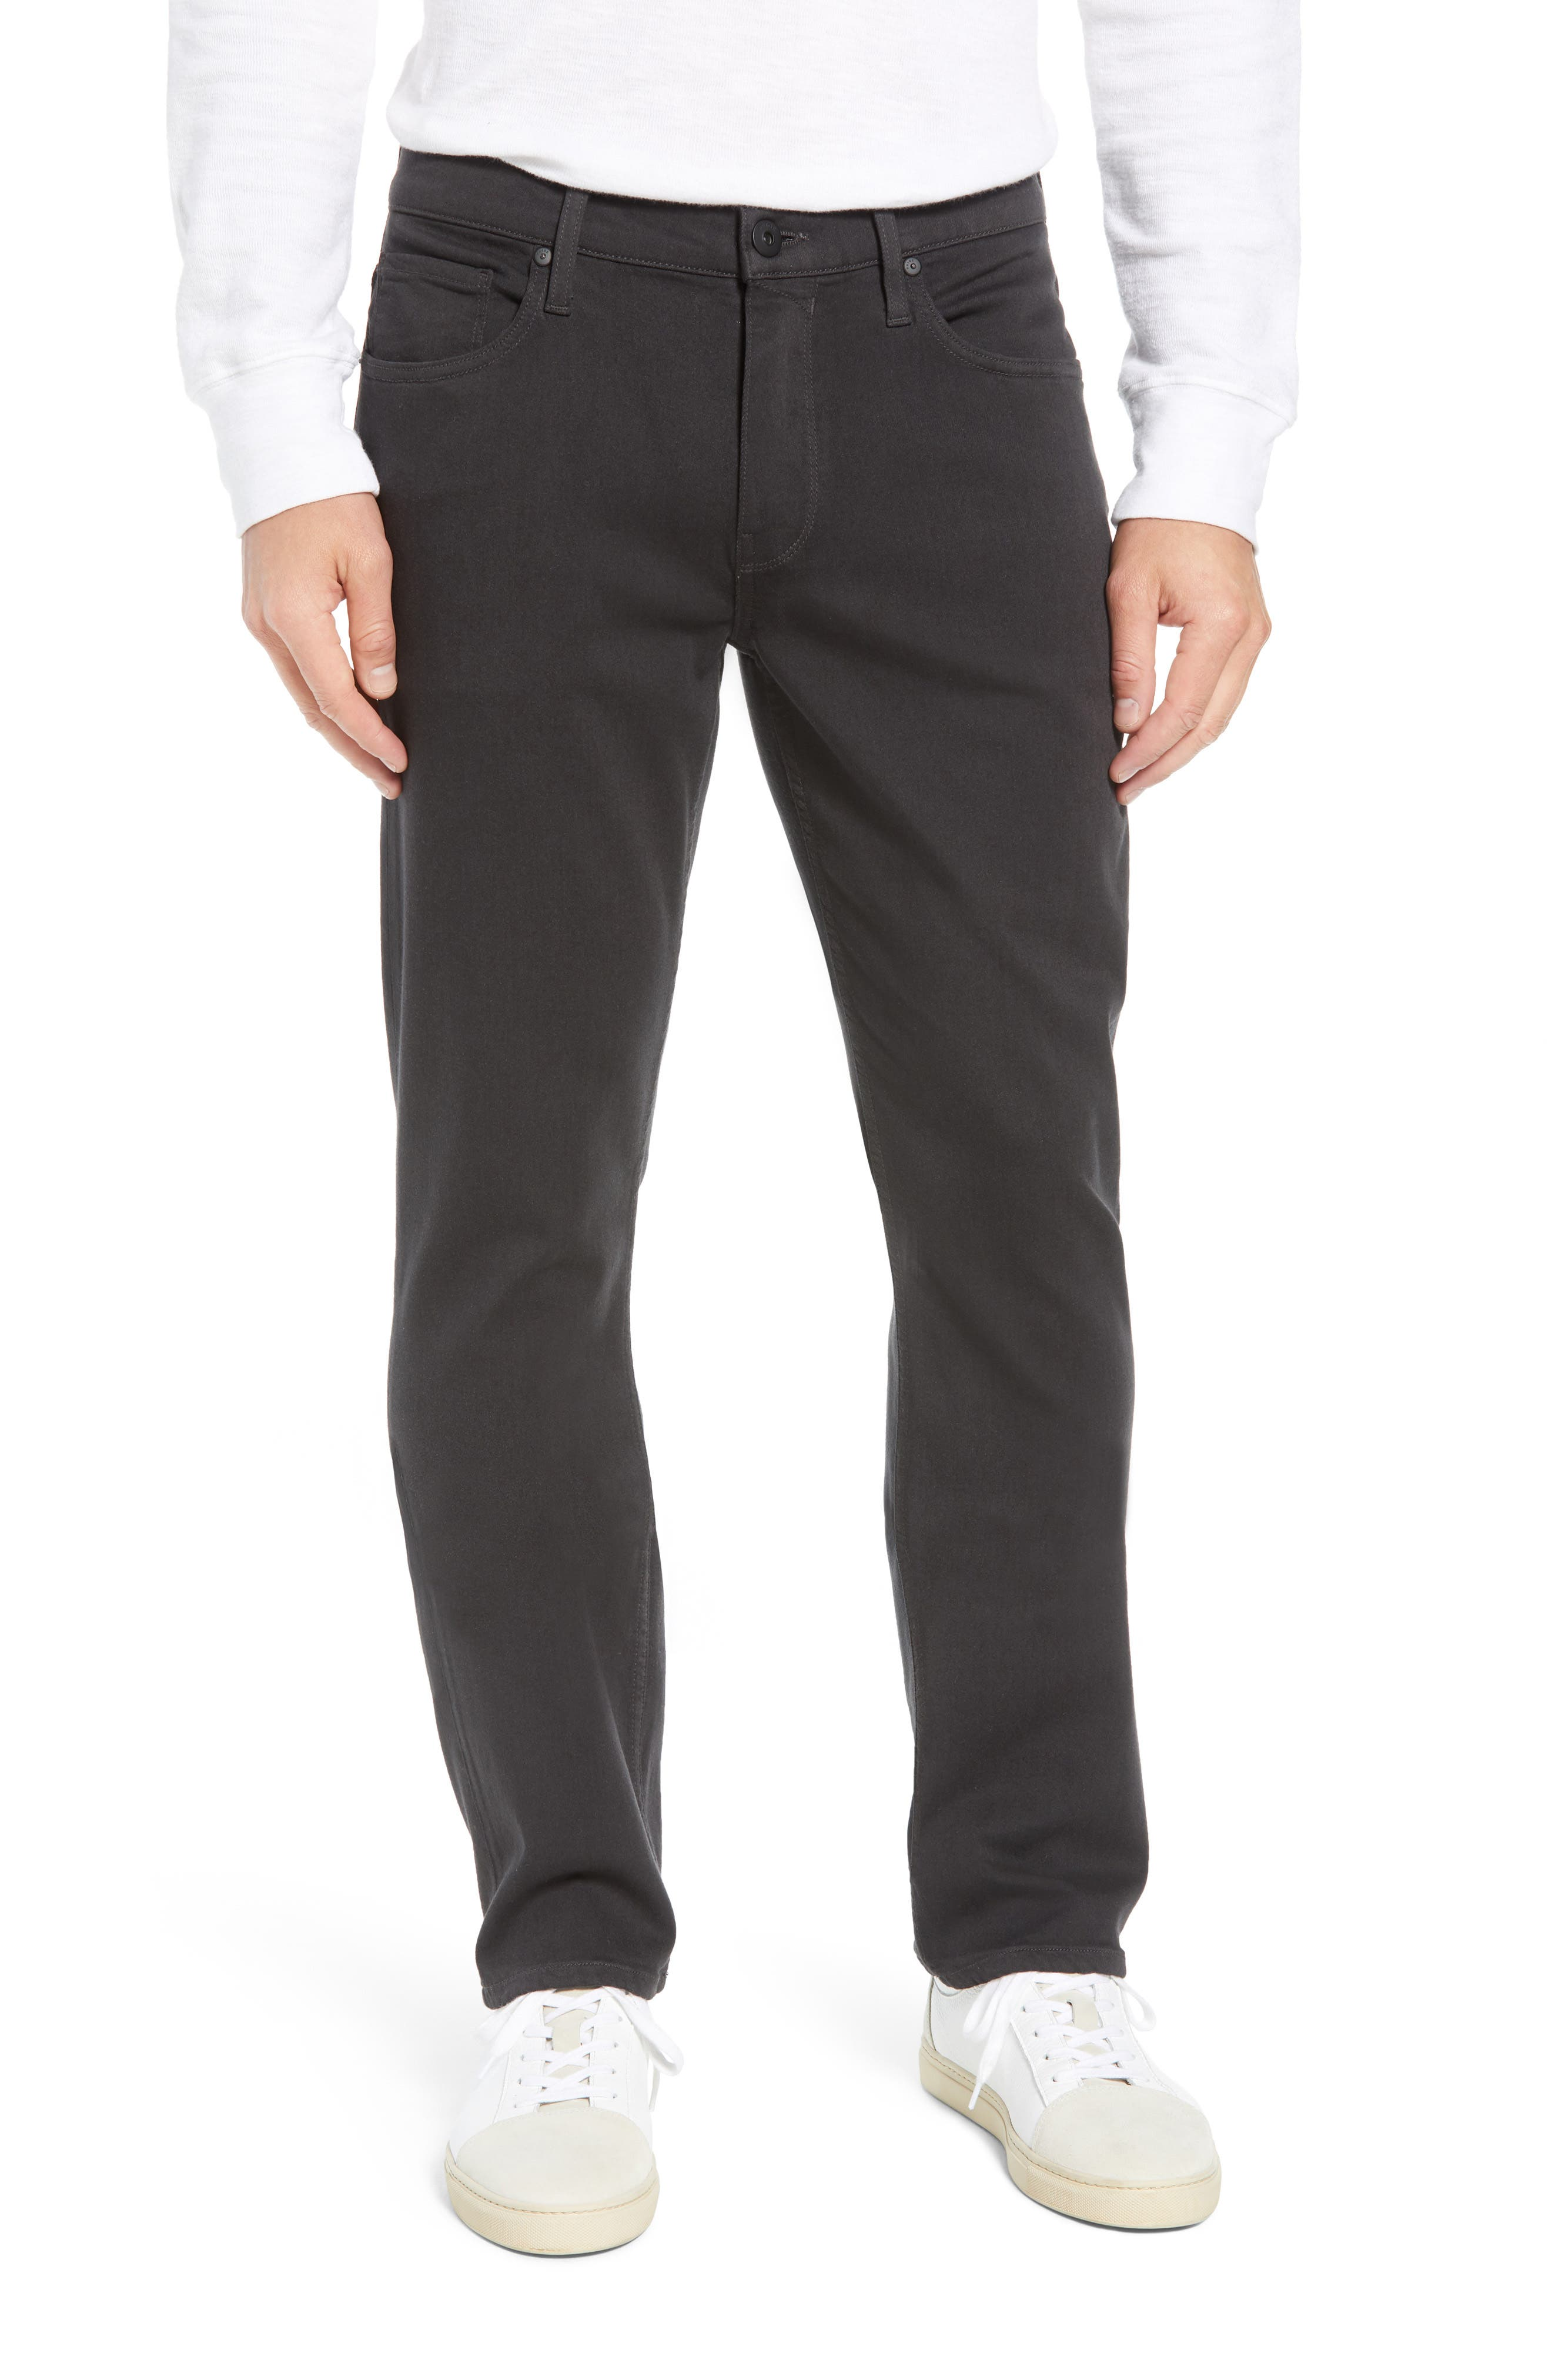 Transcend - Normandie Straight Leg Jeans,                             Main thumbnail 1, color,                             MIDNIGHT GREY